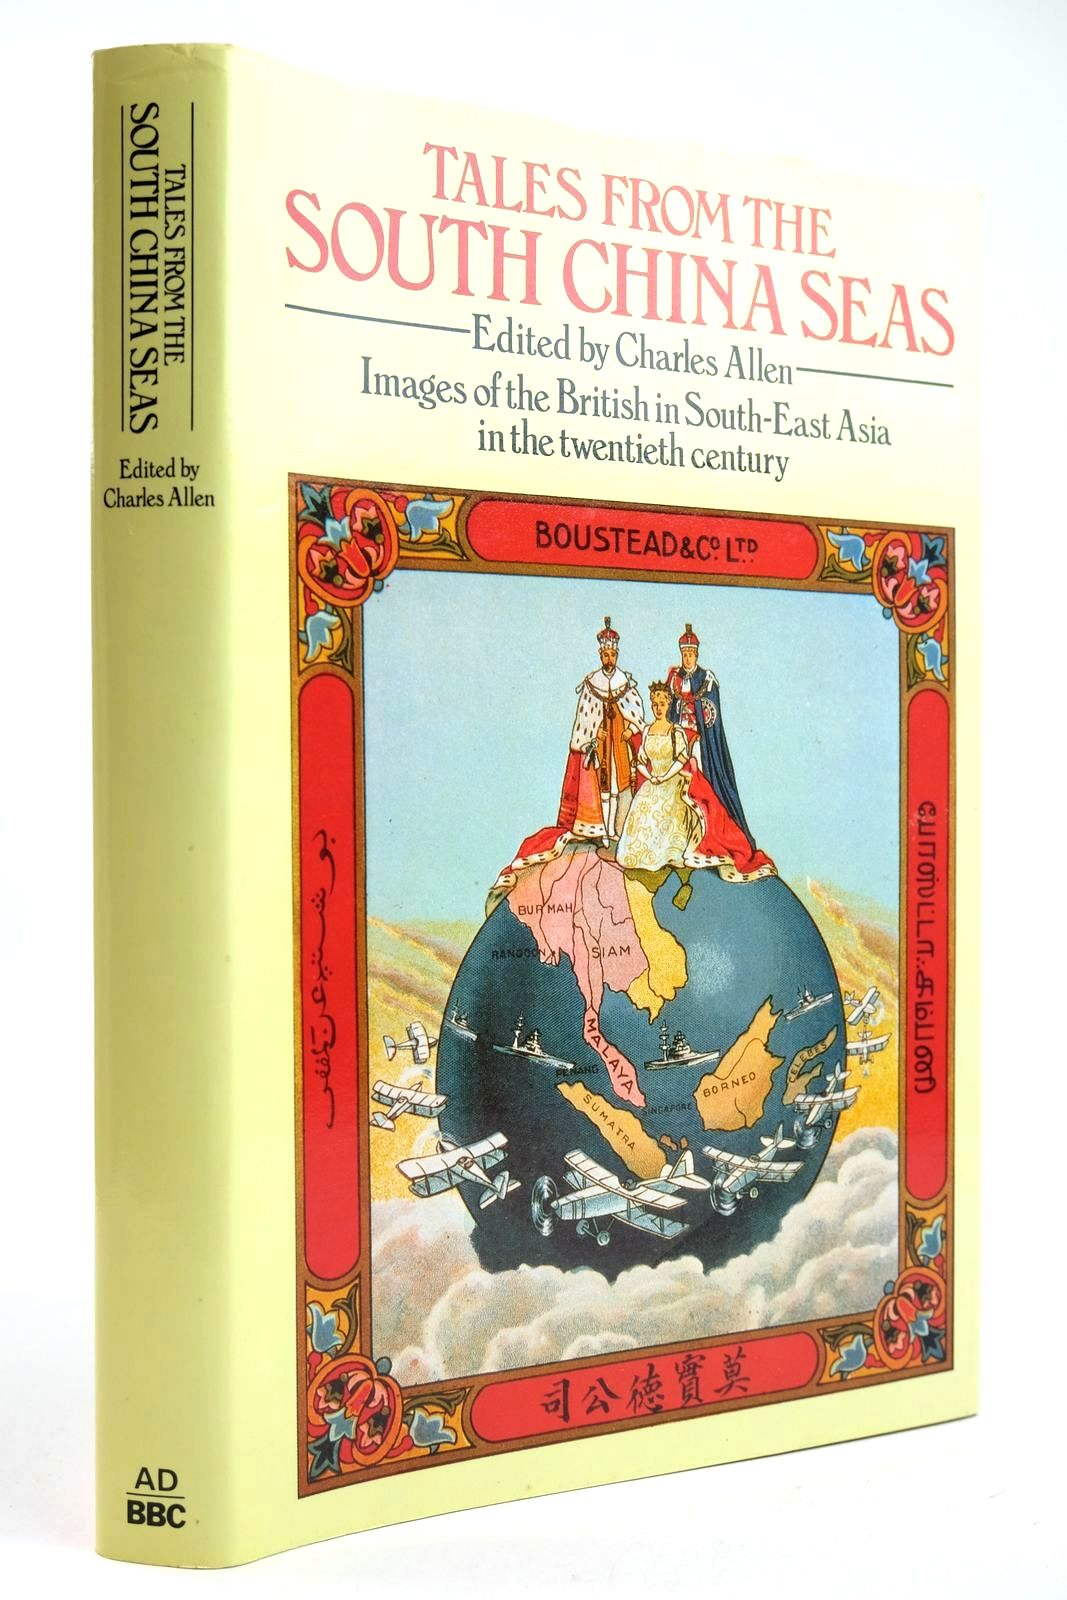 Photo of TALES FROM THE SOUTH CHINA SEAS written by Allen, Charles published by Andre Deutsch, BBC (STOCK CODE: 2132486)  for sale by Stella & Rose's Books